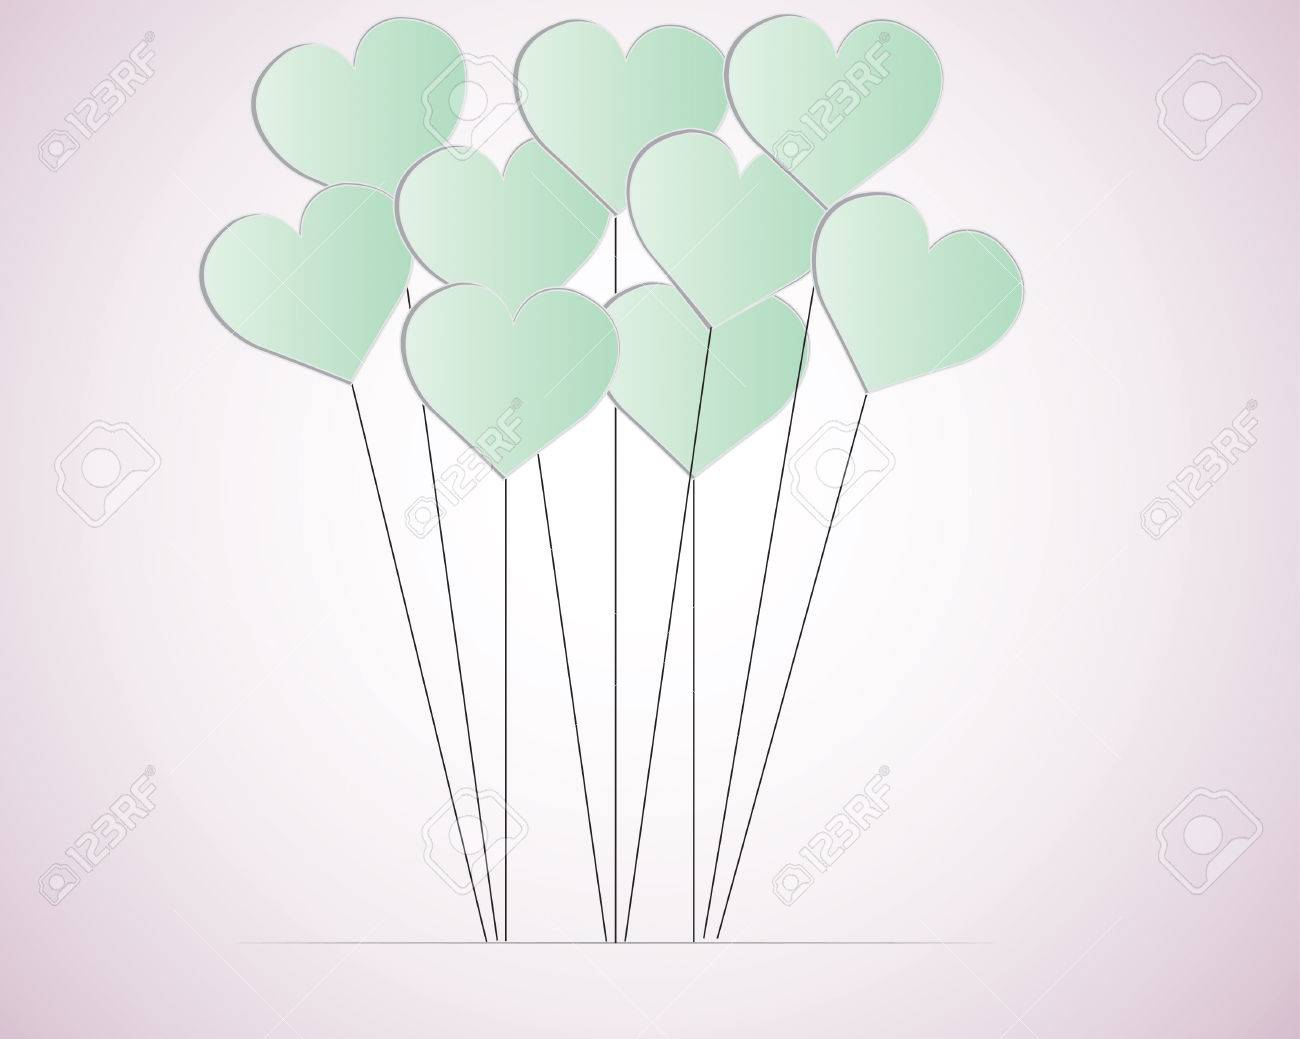 Valentines Day Heart Balloons on white Background Stock Vector - 23408315